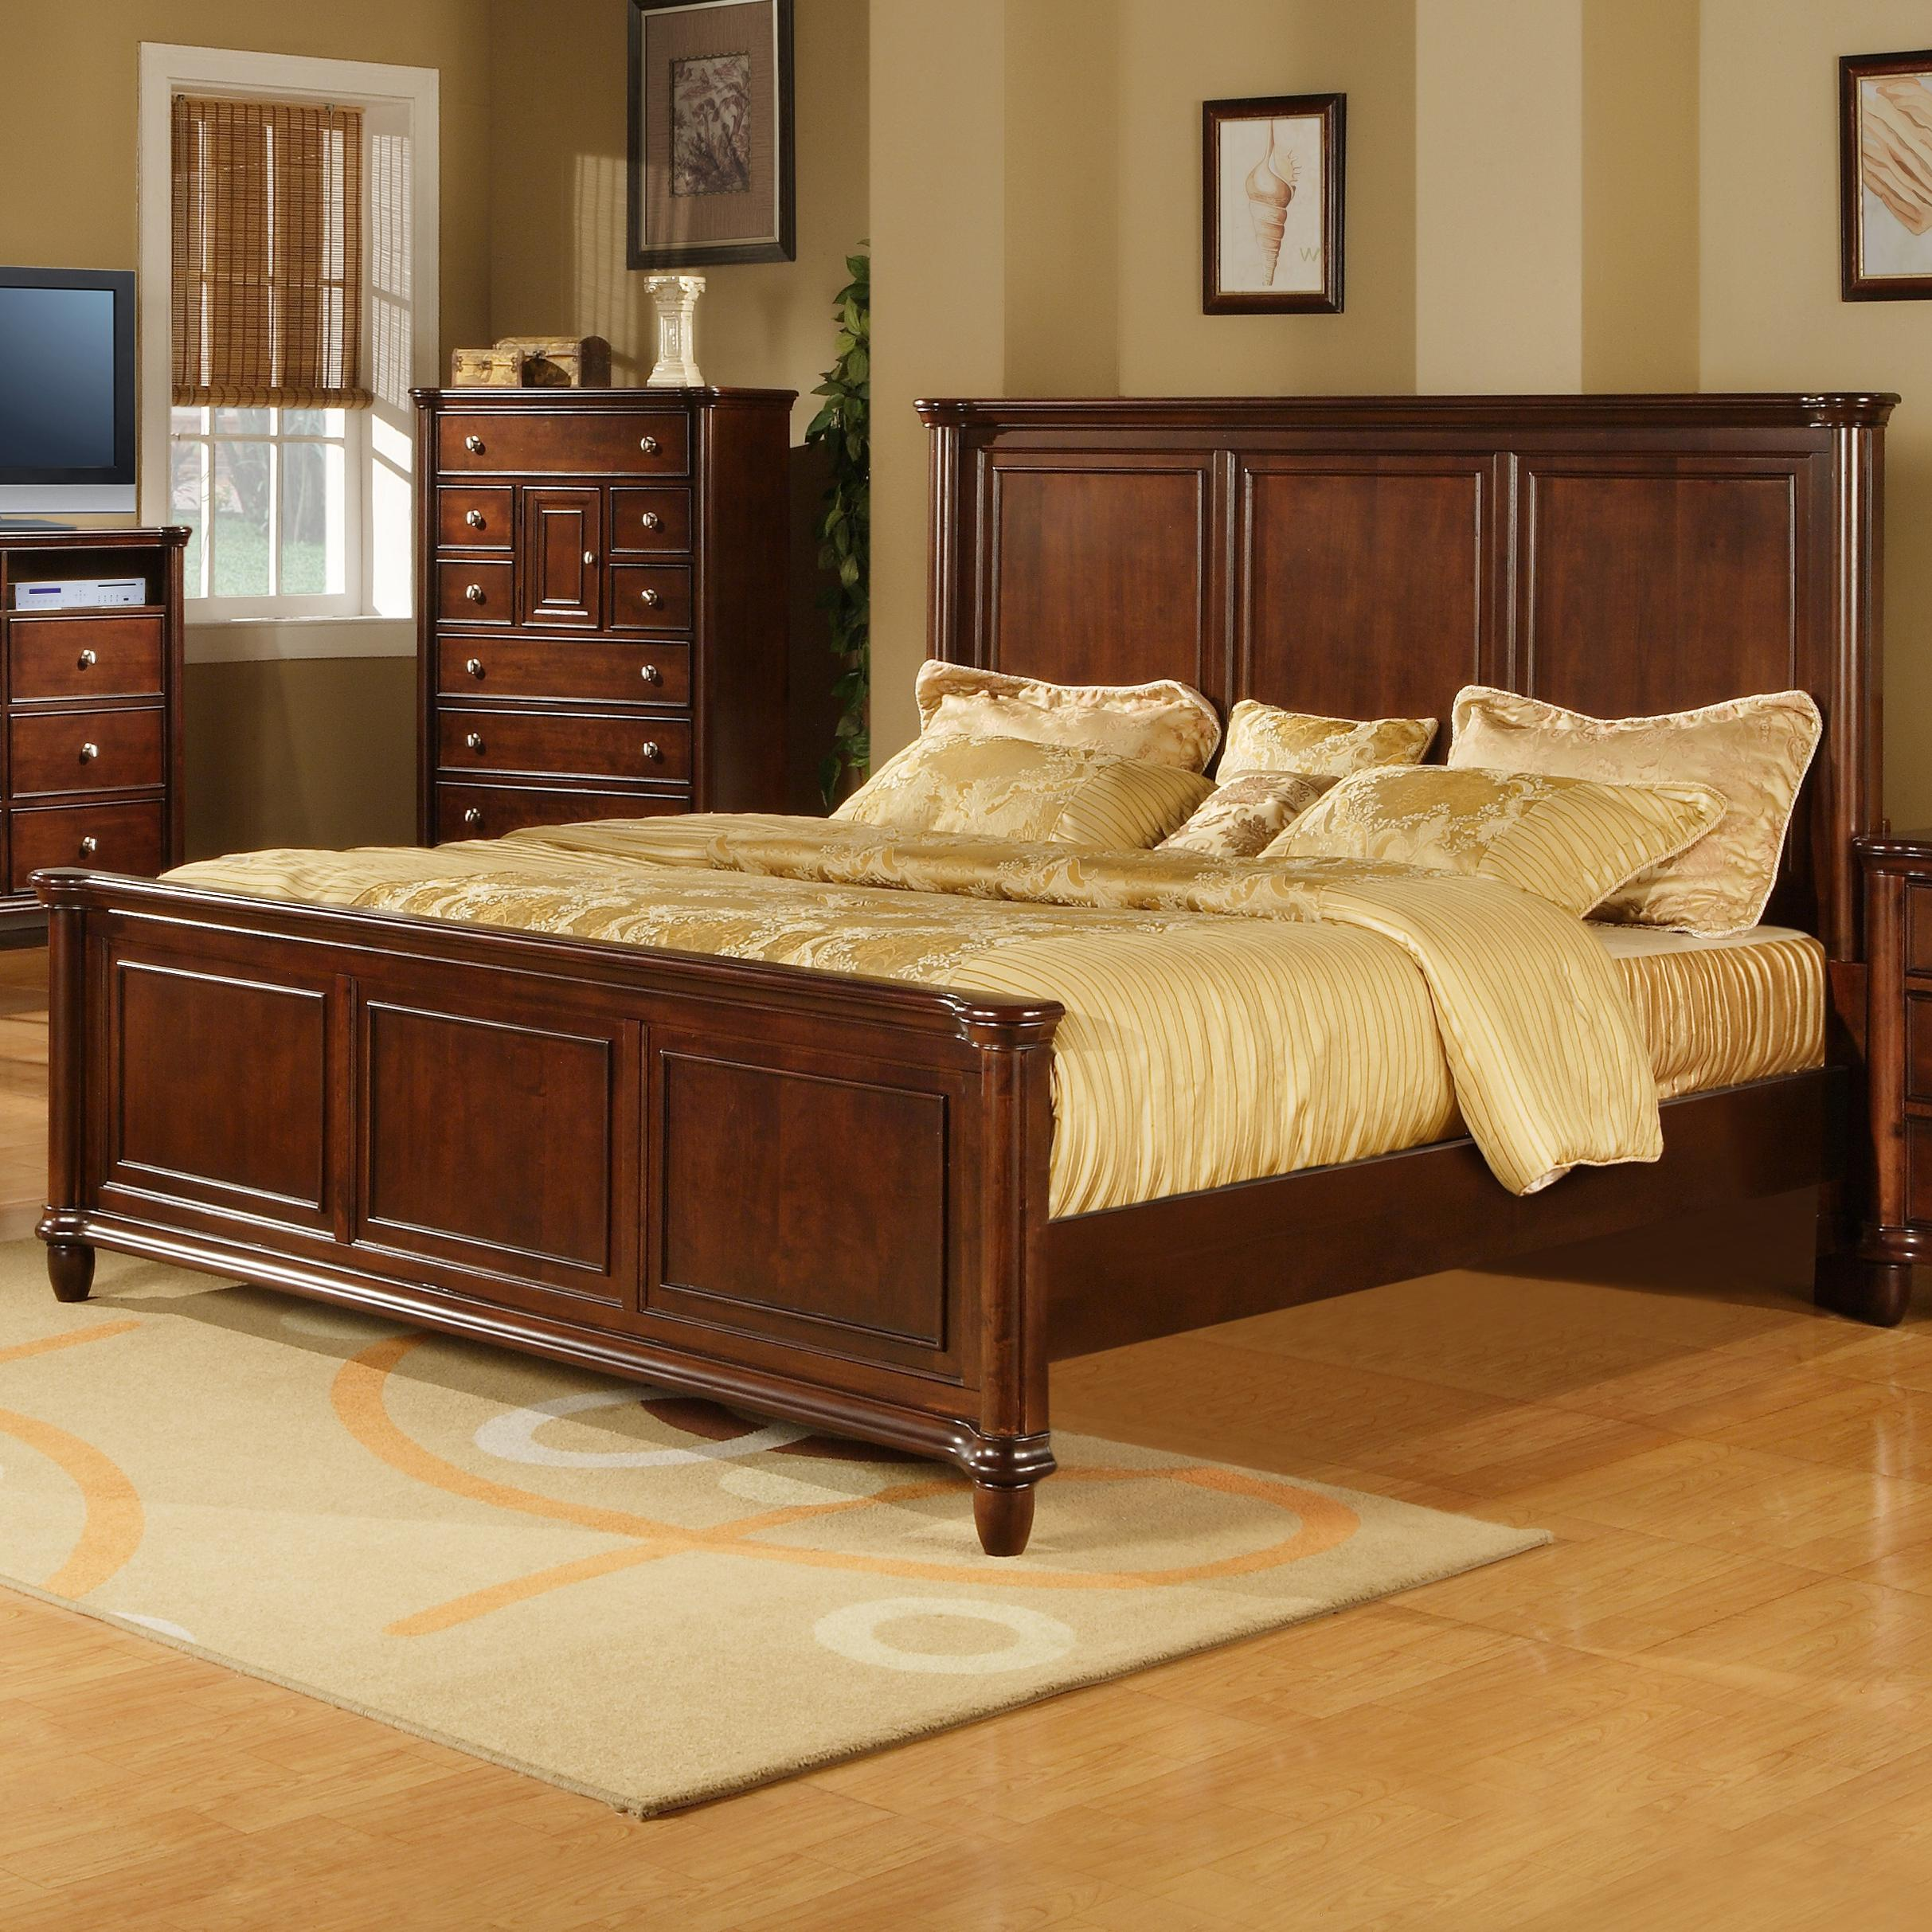 Elements International Hamilton Queen Transitional Rich Brown Panel Bed Ivan Smith Furniture